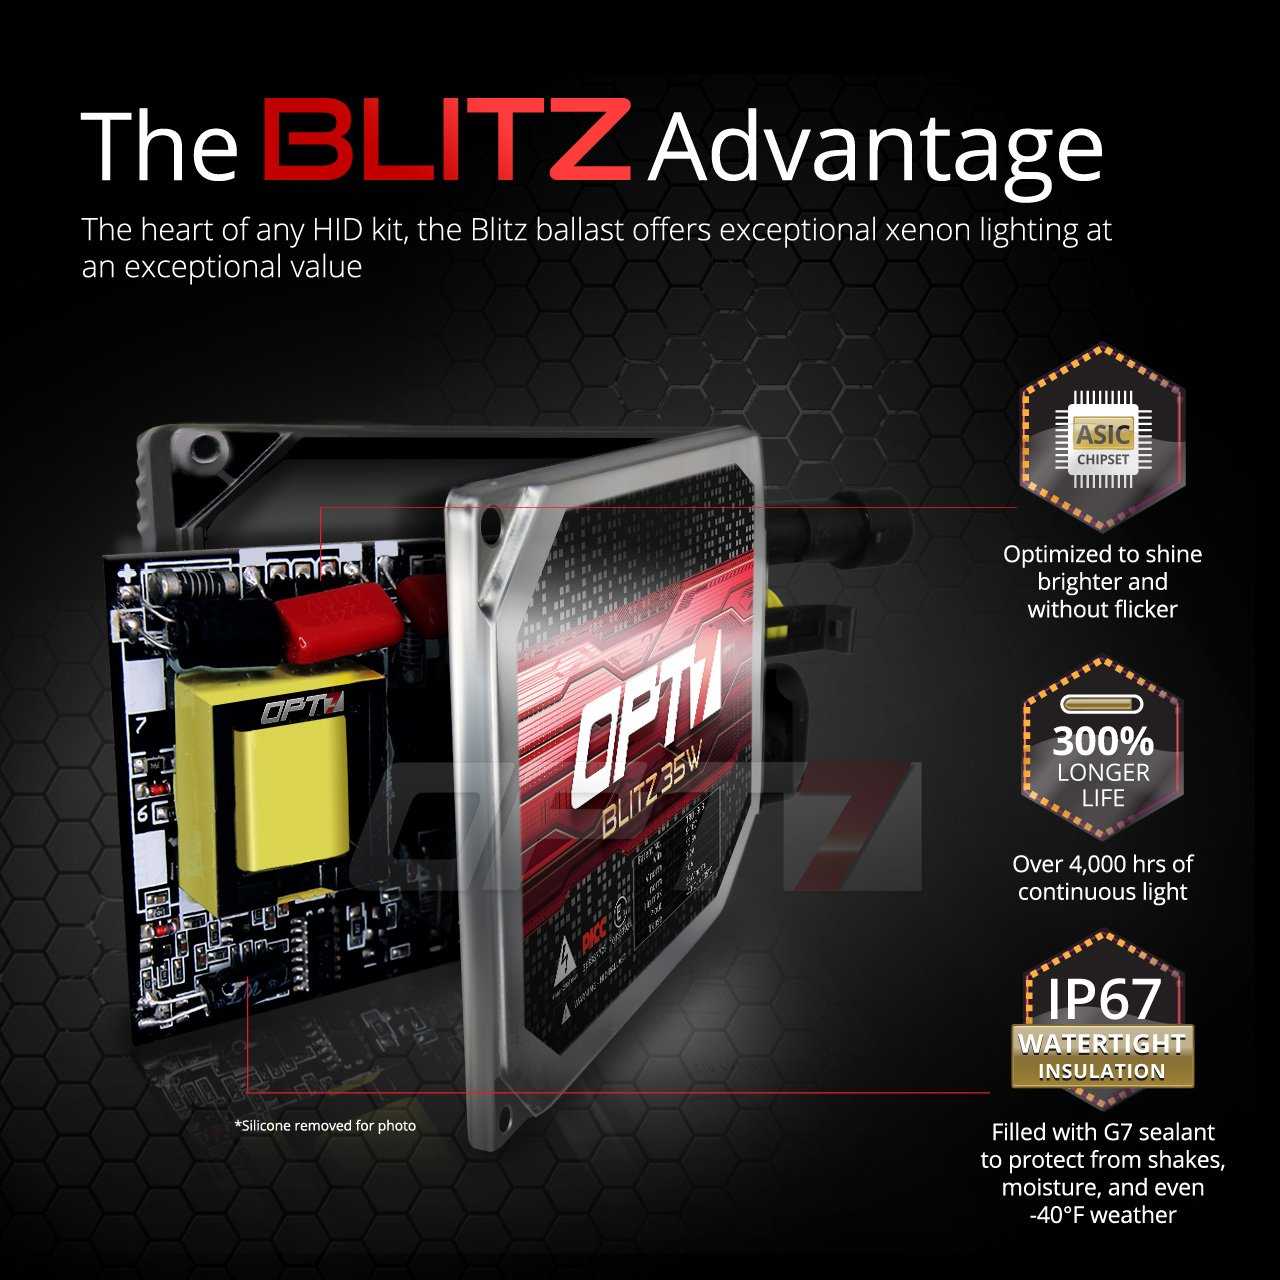 Opt7 Blitz 35w 9006 Hid Kit Relay Bundle All Bulb Wiring Schematic Sizes And Colors 2 Yr Warranty 8000k Ice Blue Xenon Light Automotive